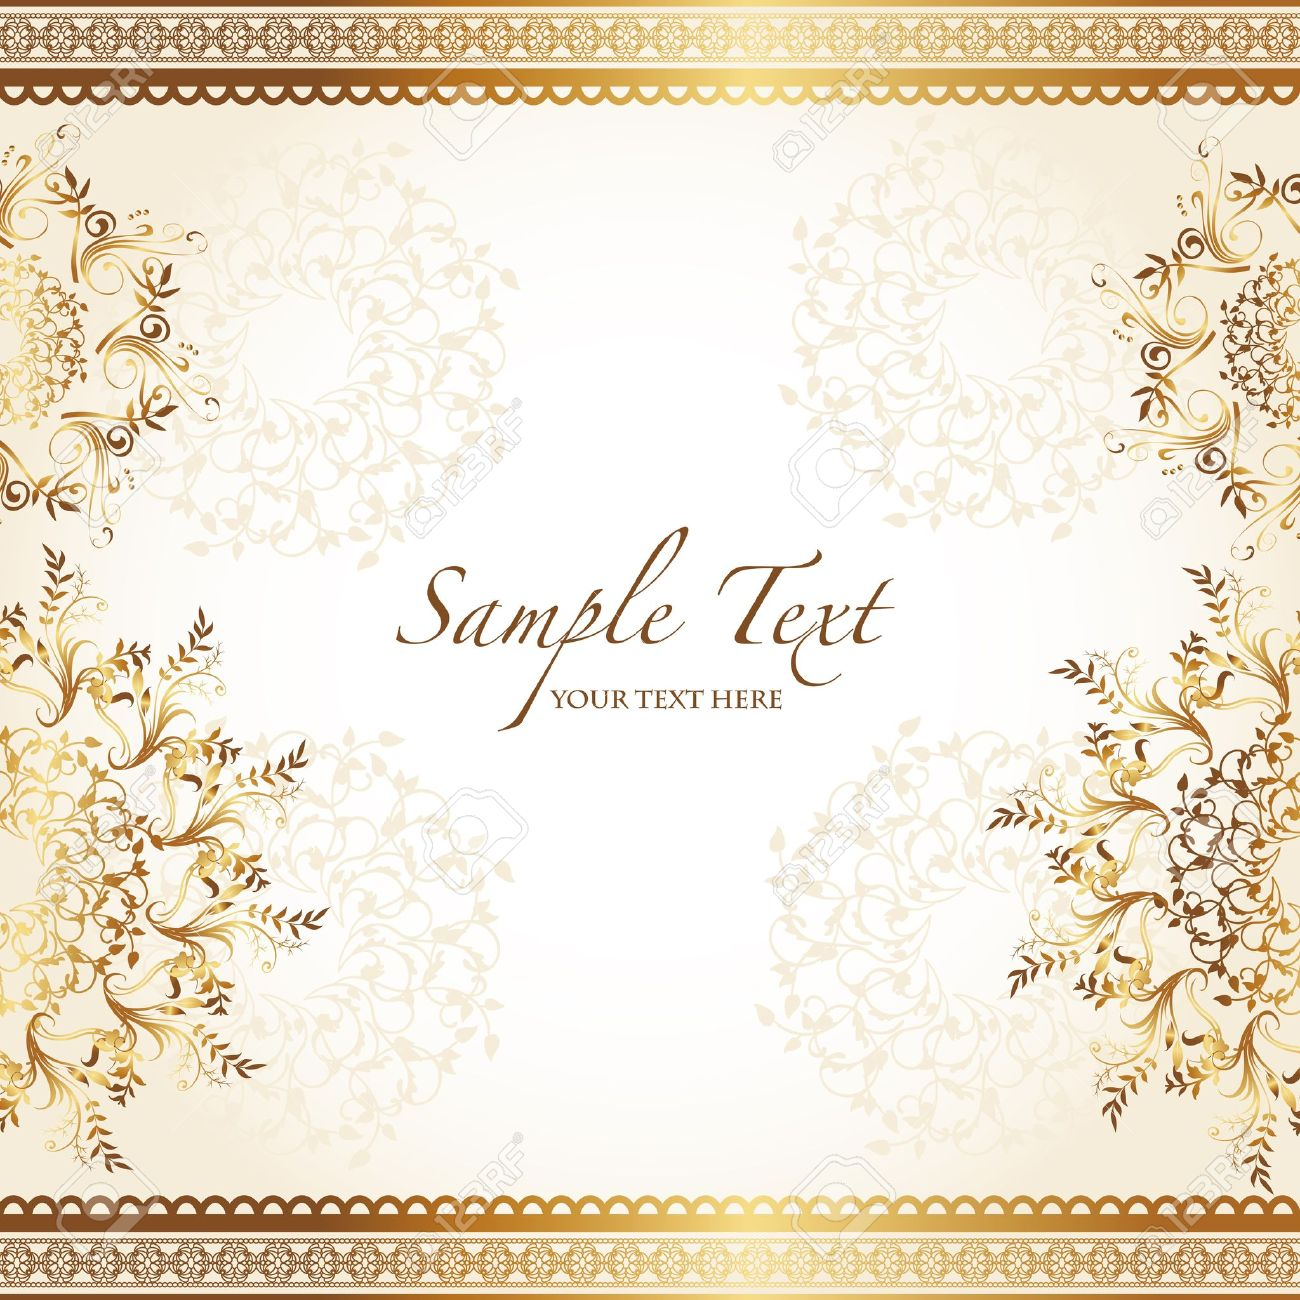 Wedding Card Design Images & Stock Pictures. Royalty Free Wedding ...